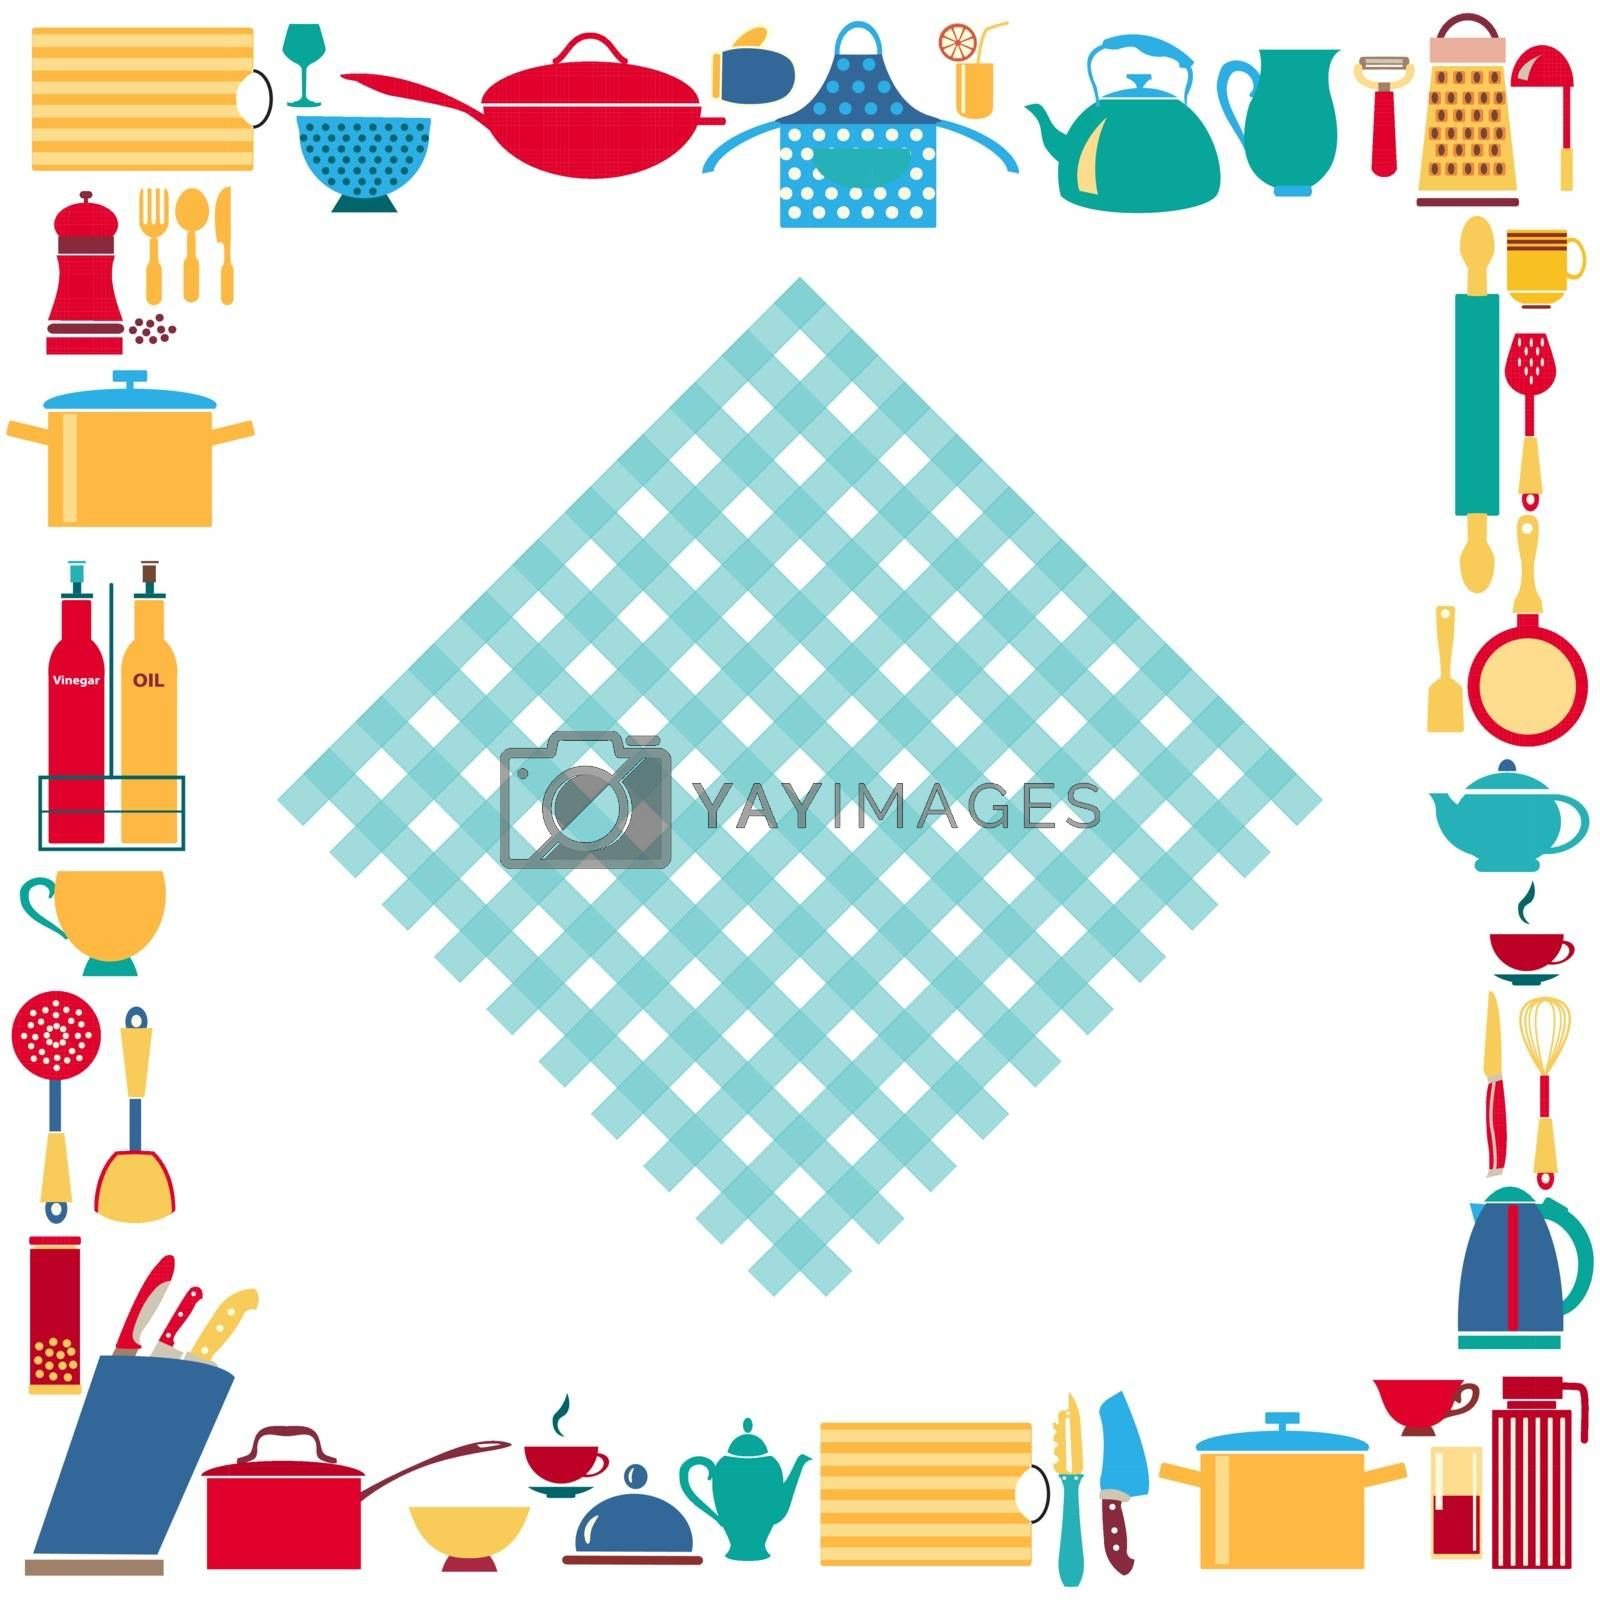 Set of kitchenware and restaurant utensils vector background. Can be used in banner,  publications, postcards, print, poster.